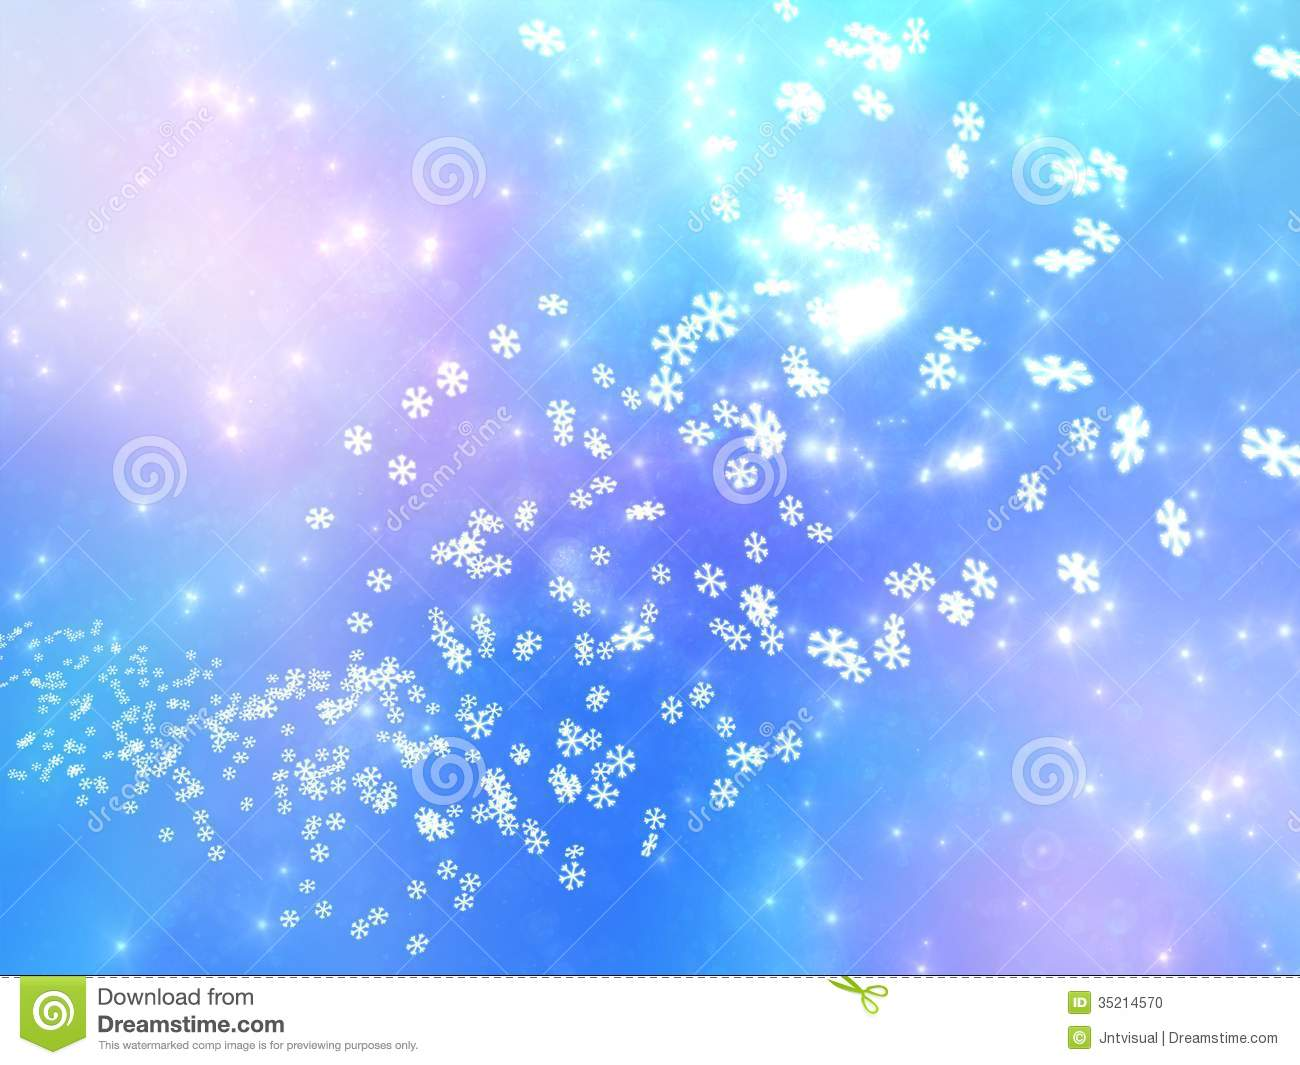 Falling Snowflakes On A Pink And Blue Background Stock